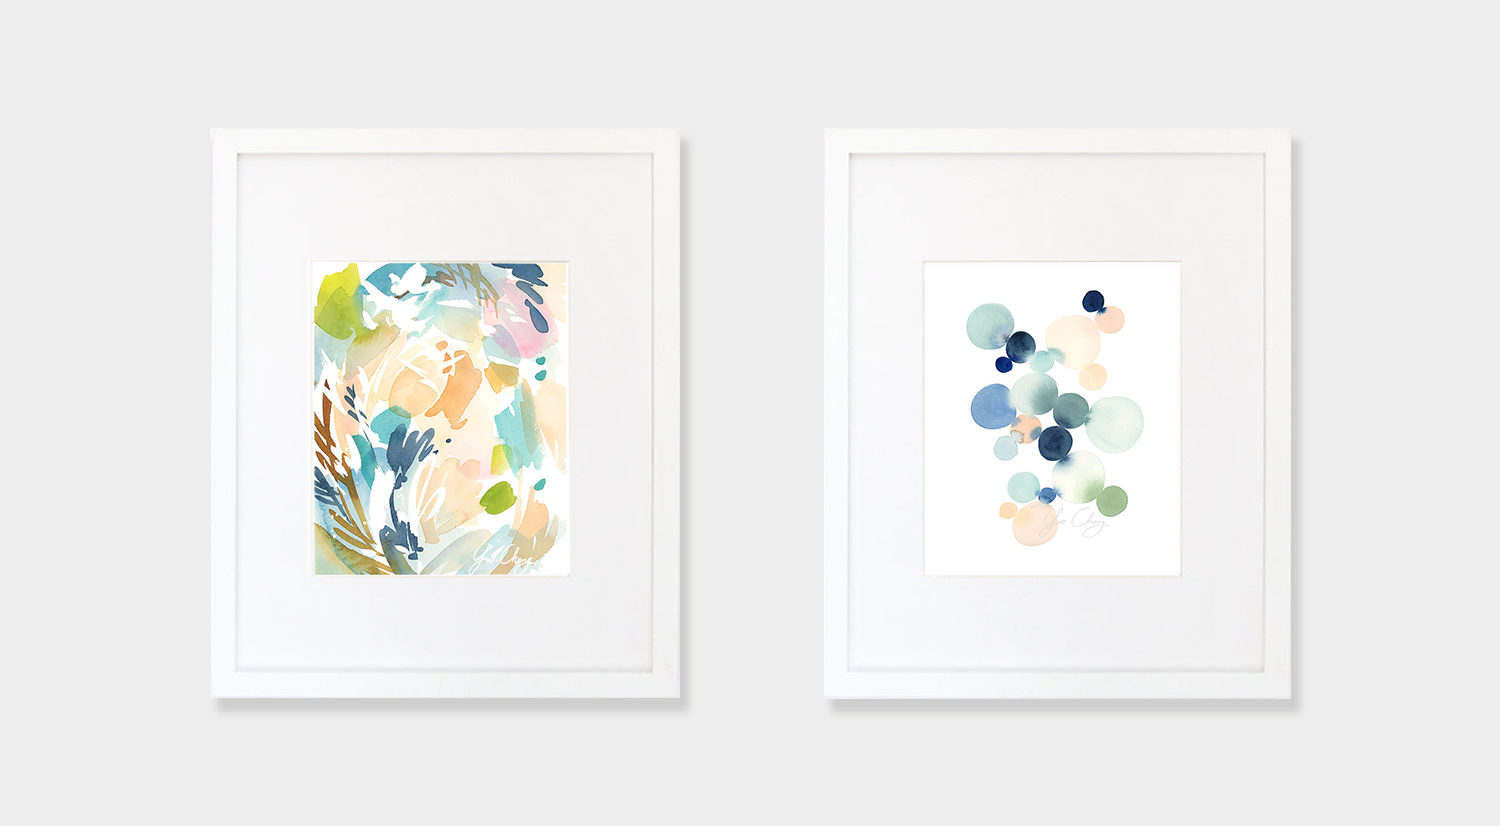 watercolor illustrations Yao Cheng Design feat on One O